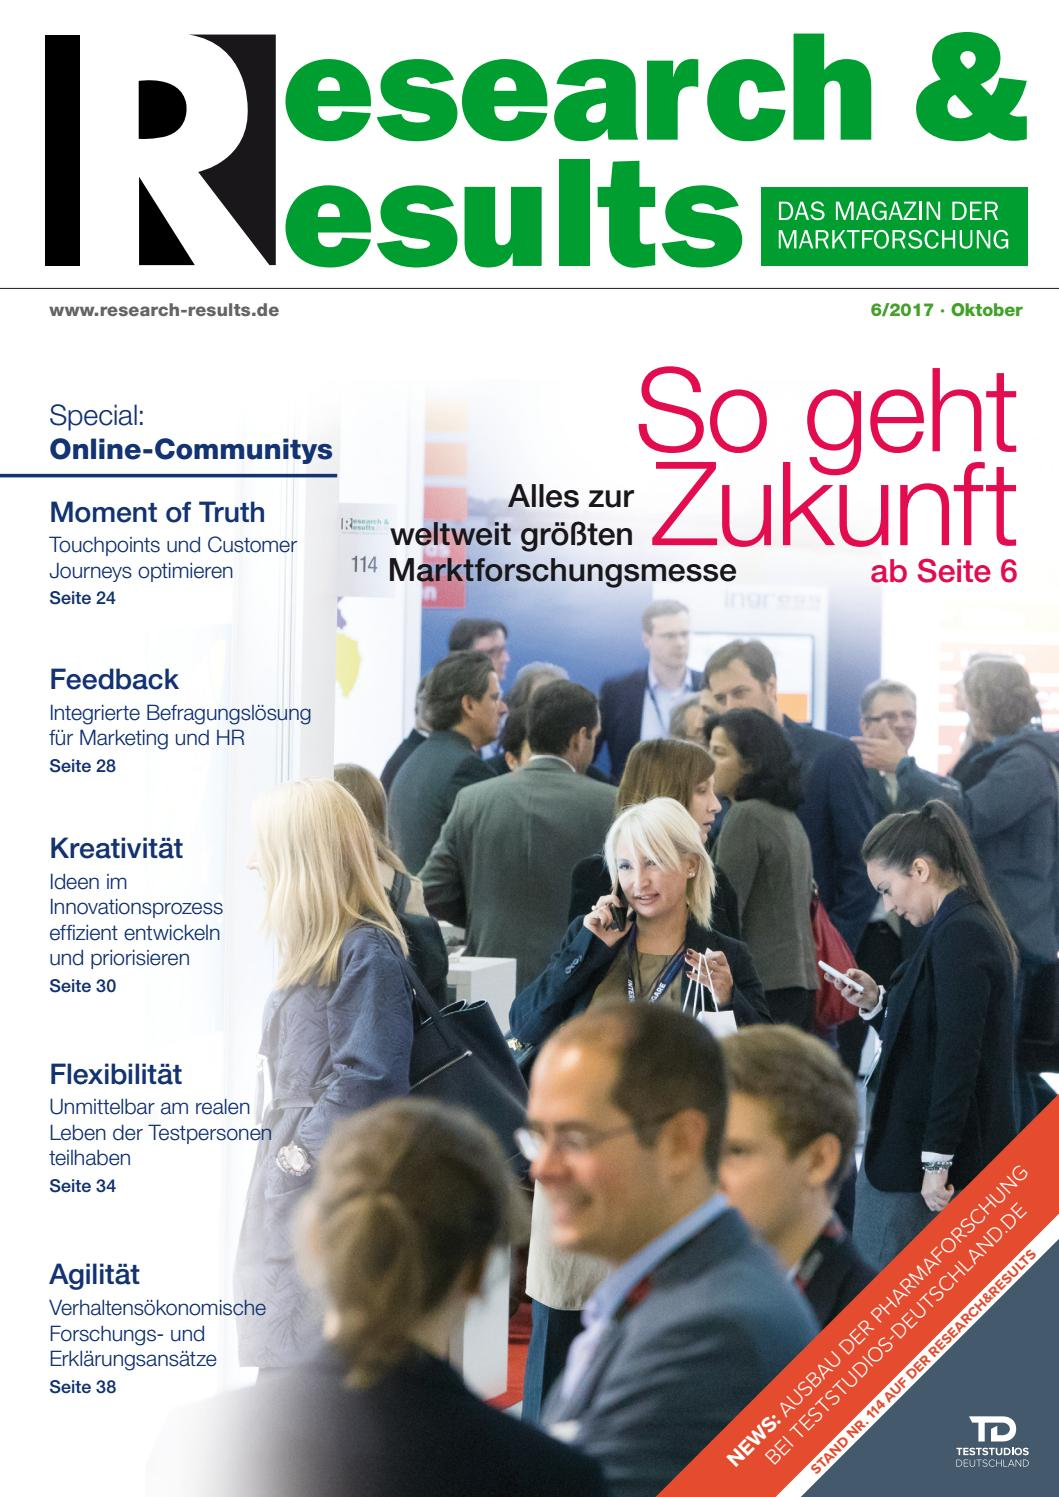 Research & Results 6/2017 by Research & Results - issuu